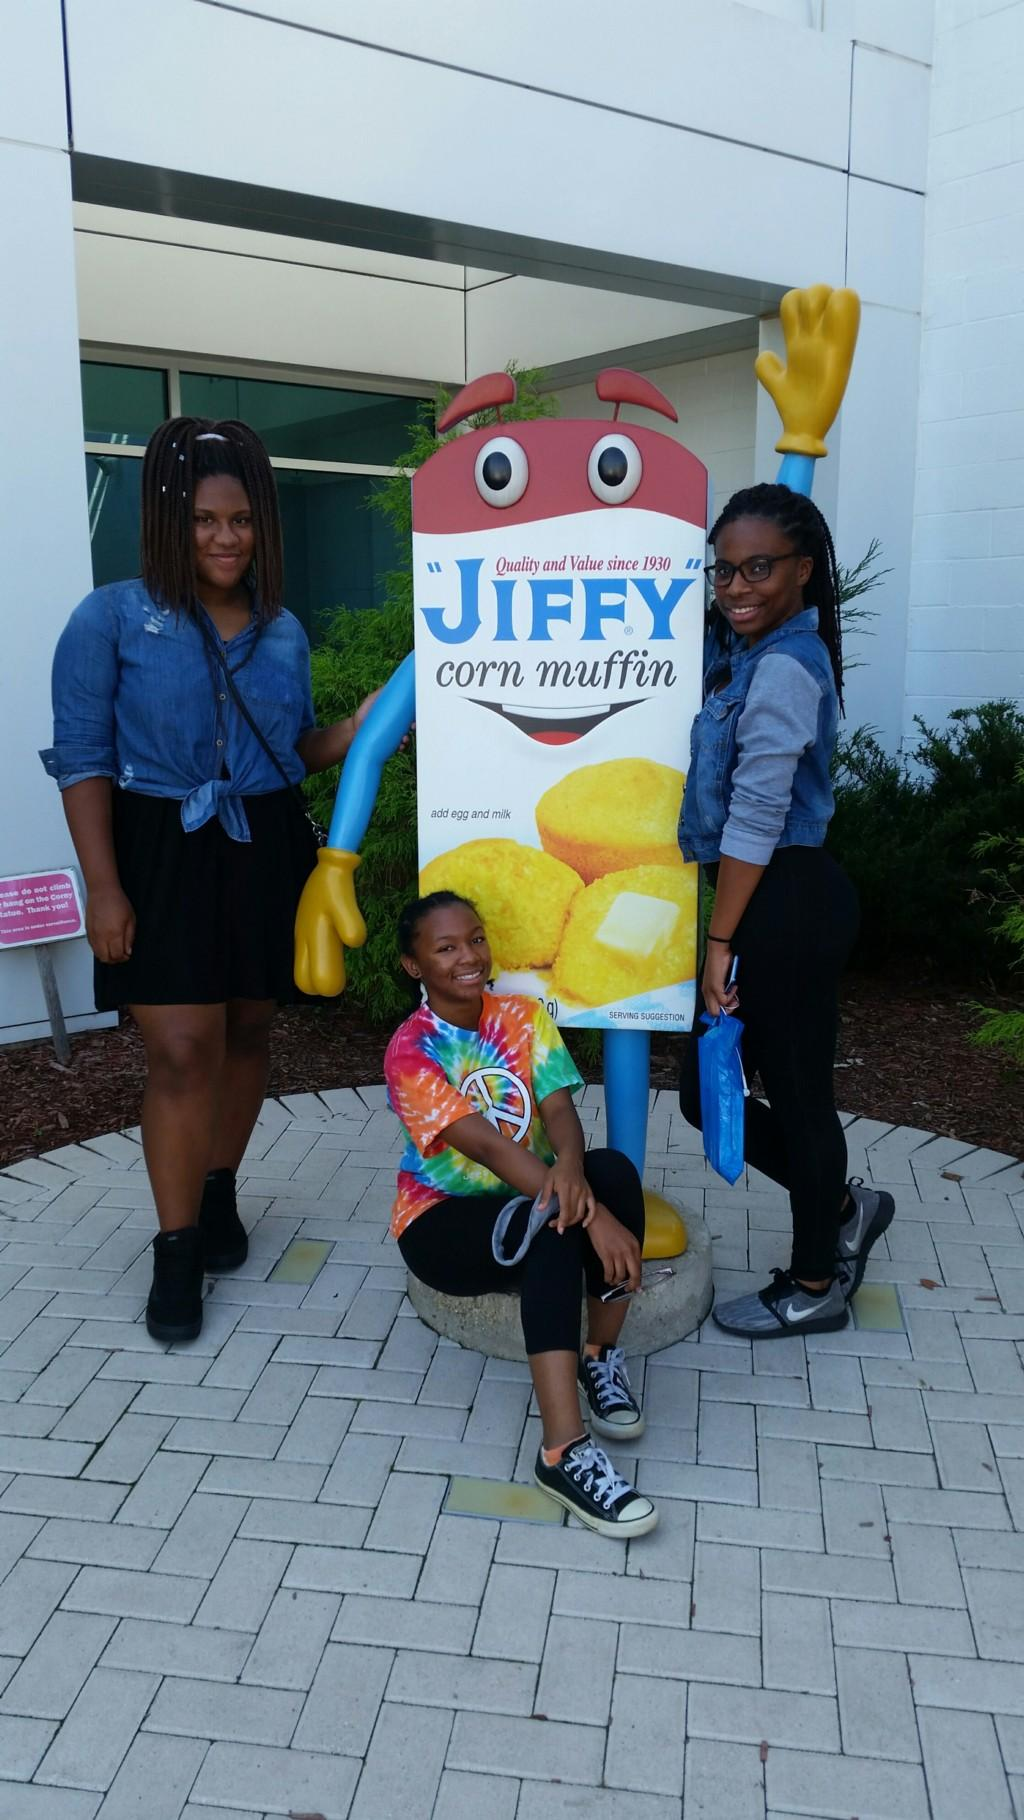 Students posing with the Jiffy box mascot, Corny.